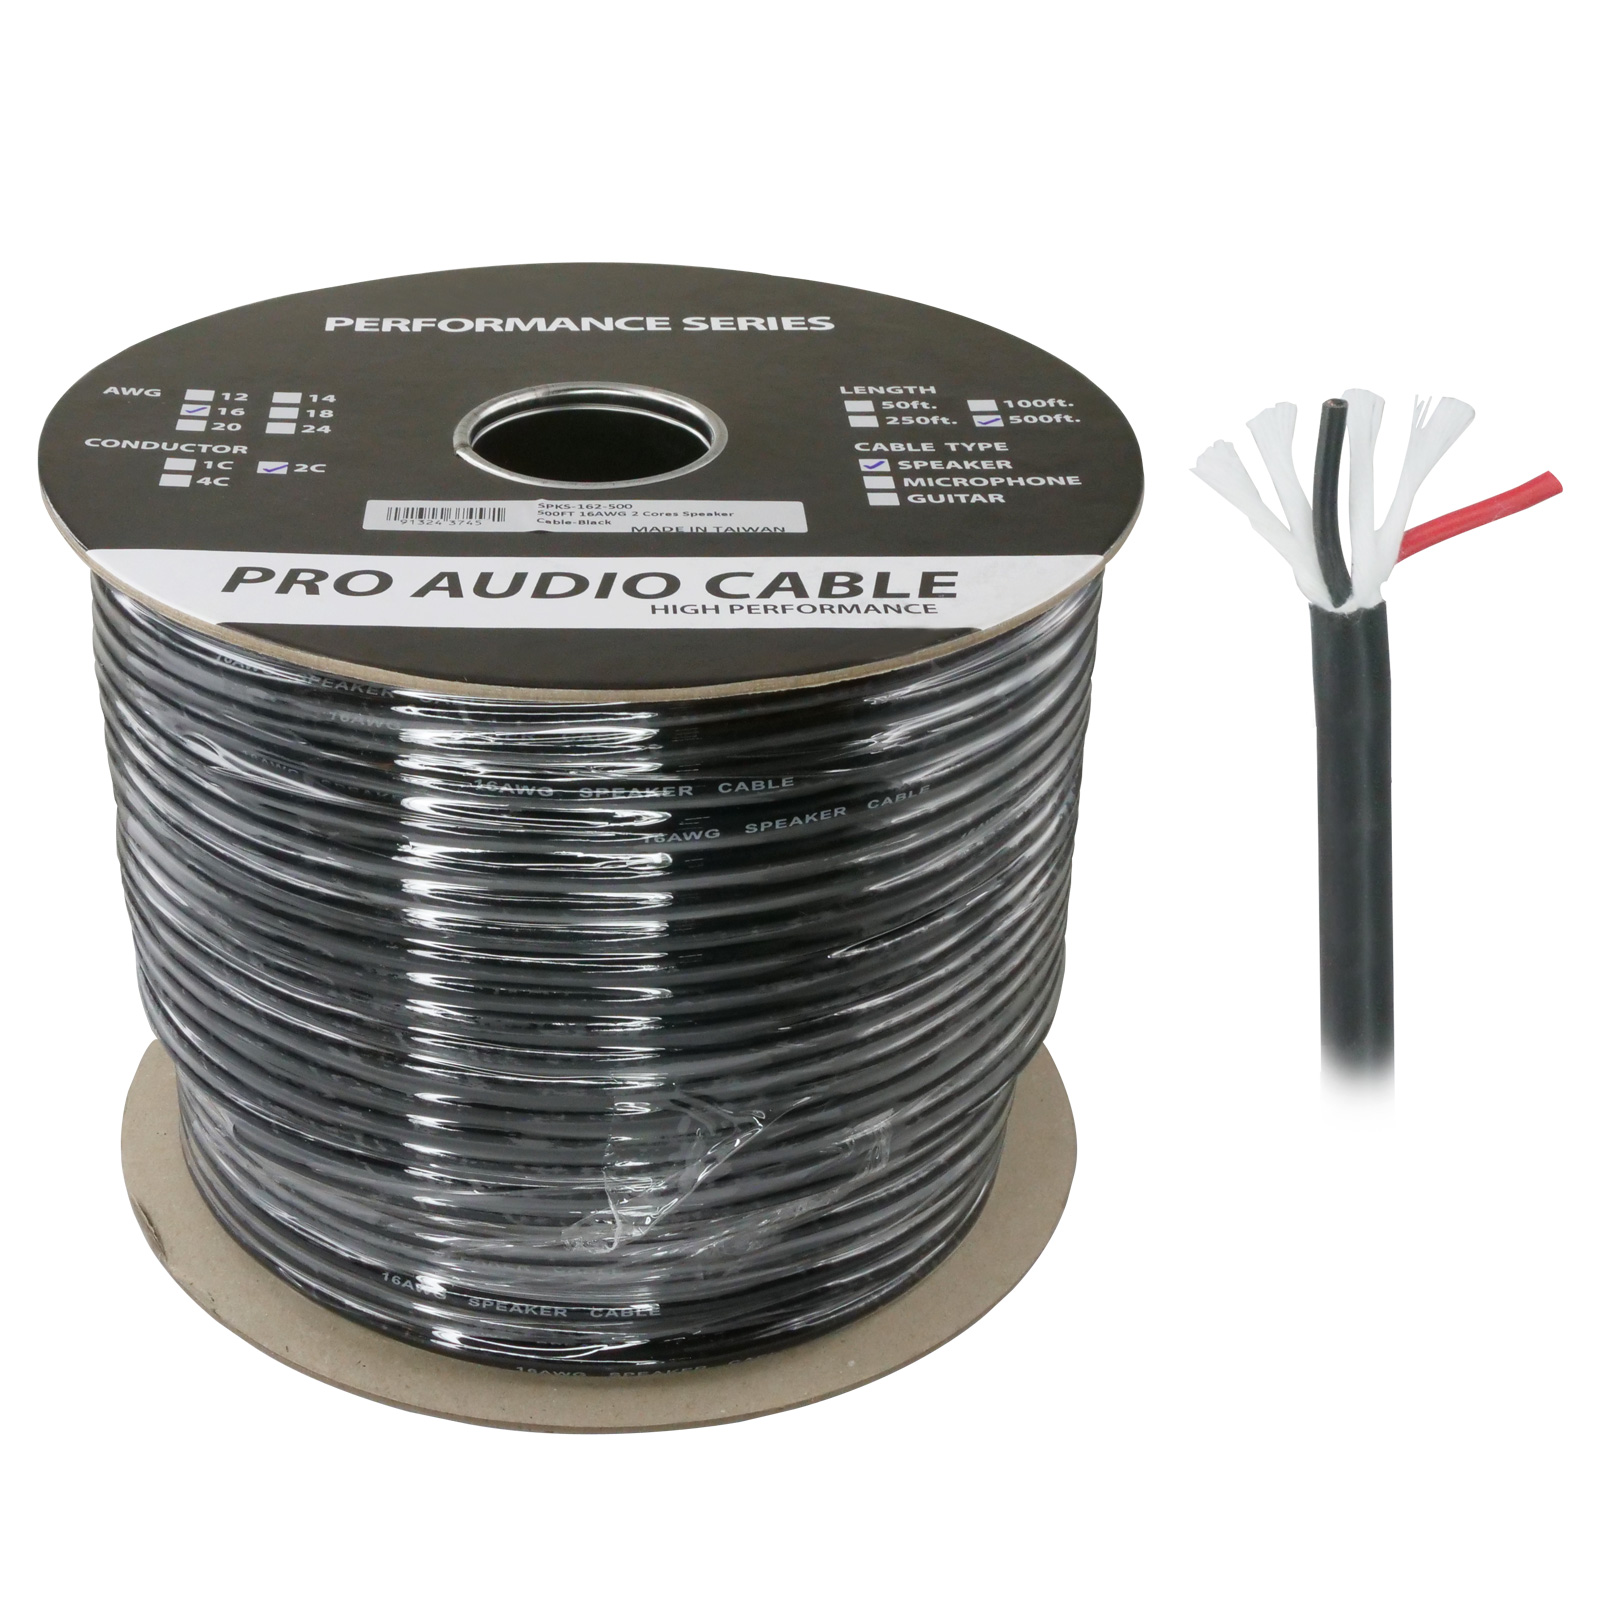 Strange 500Ft 16Awg 2 Conductor Pro Audio Speaker Cable Black Pi Wiring Cloud Hisonuggs Outletorg